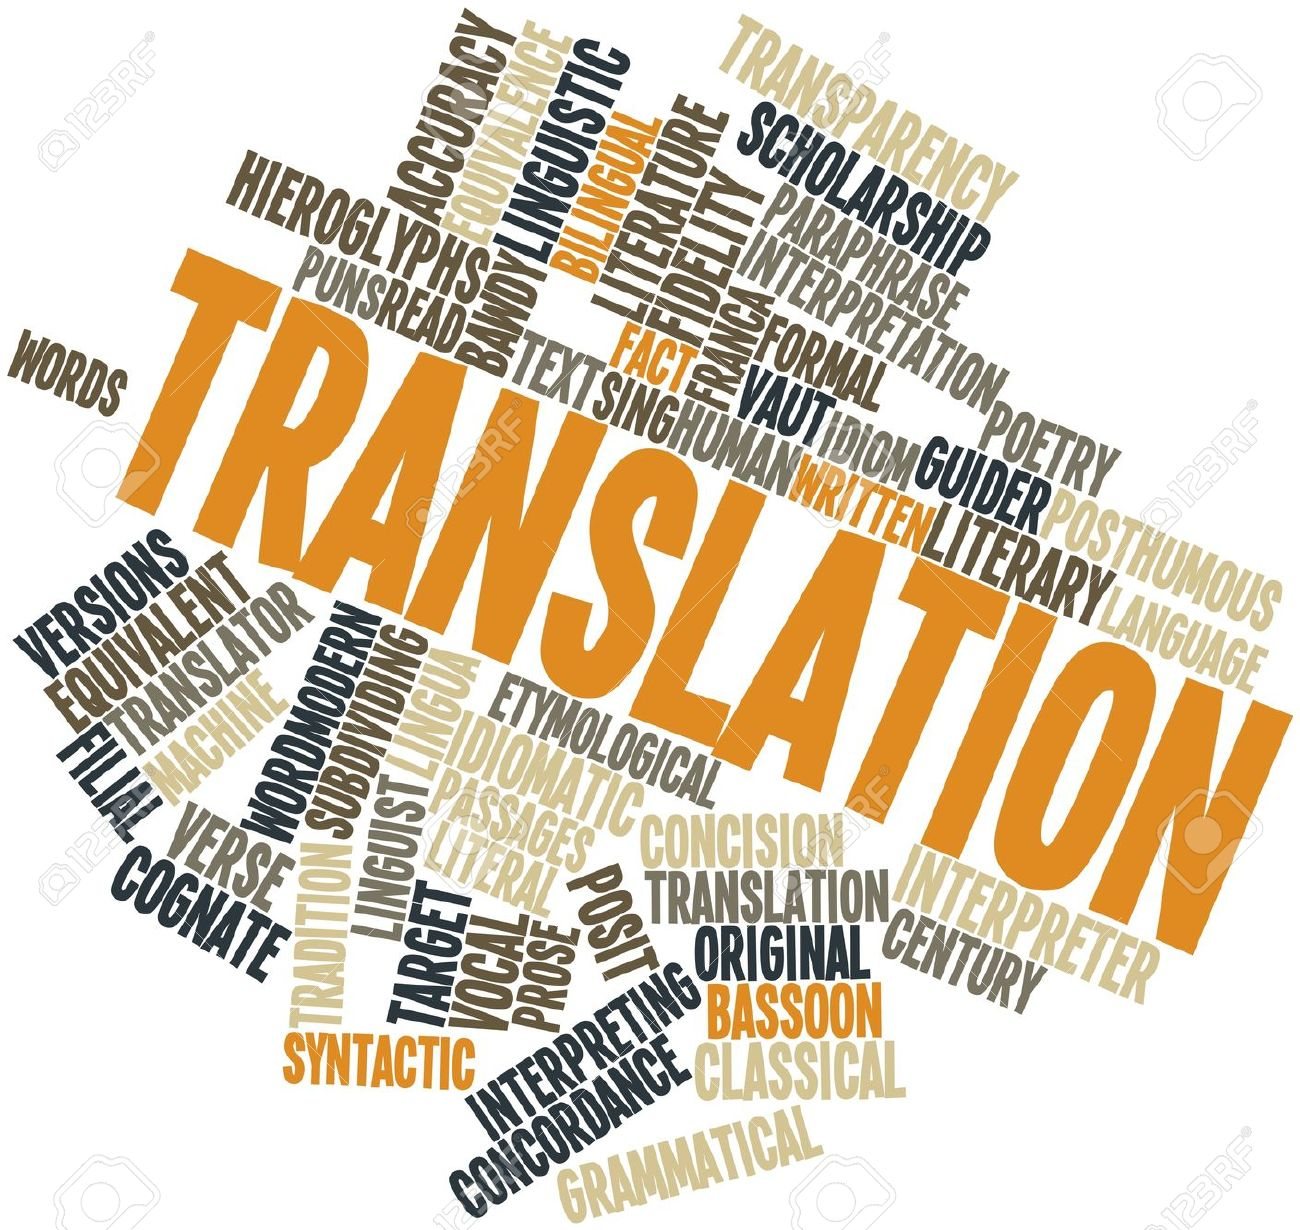 Translate Words And Articles From English To Spanish For